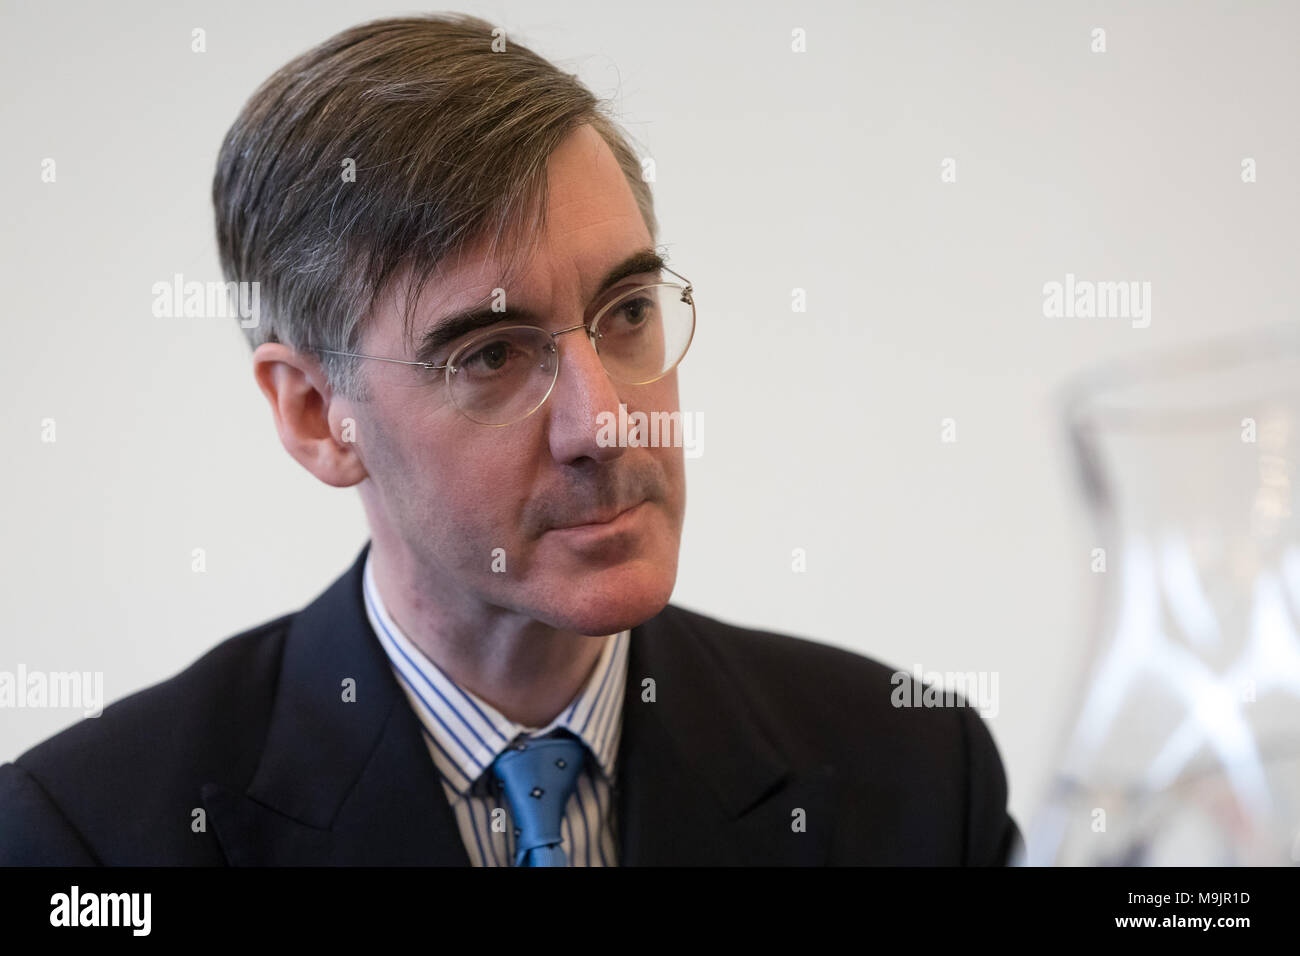 London, UK. 27th March 2018. Jacob Rees-Mogg speaks at a pro Brexit event organised by the campaign group, Leave Means Leave. Credit: Vickie Flores/Alamy Live News - Stock Image